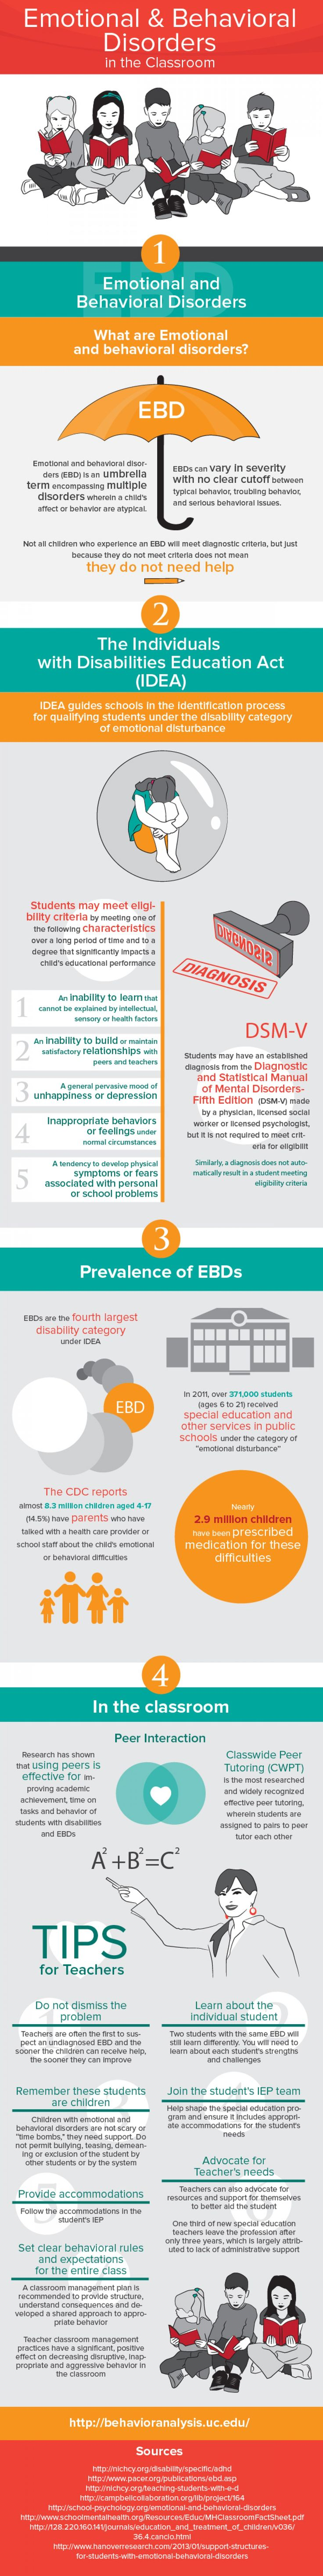 Emotional and Behavioral Disorders in the Classroom Infographic